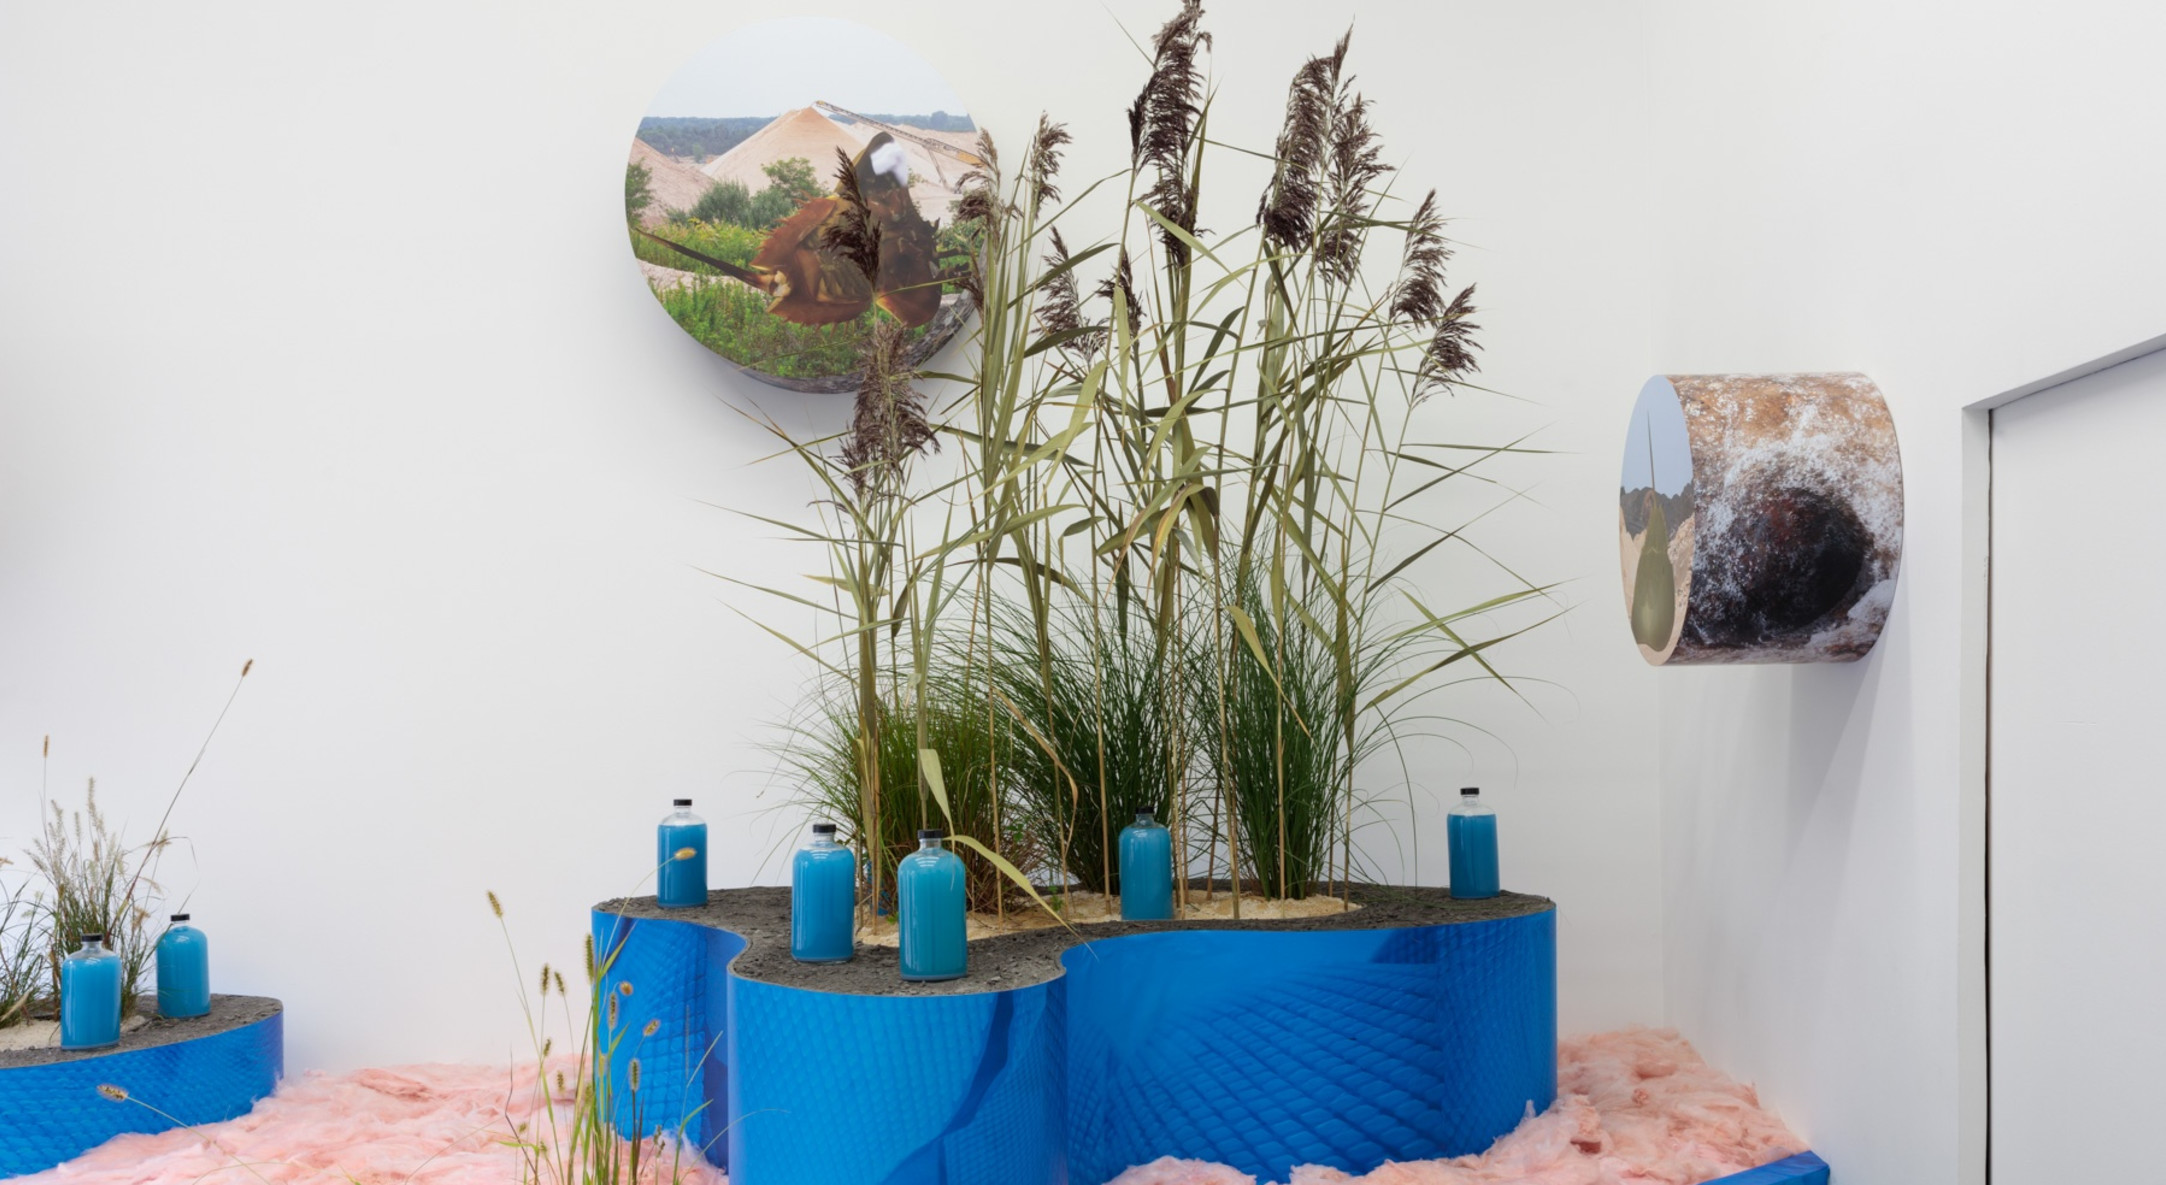 Installation view of Rachael Champion New York Interstate 495 Is A Terminal Moraine, Hales Project Room NYC, 2018